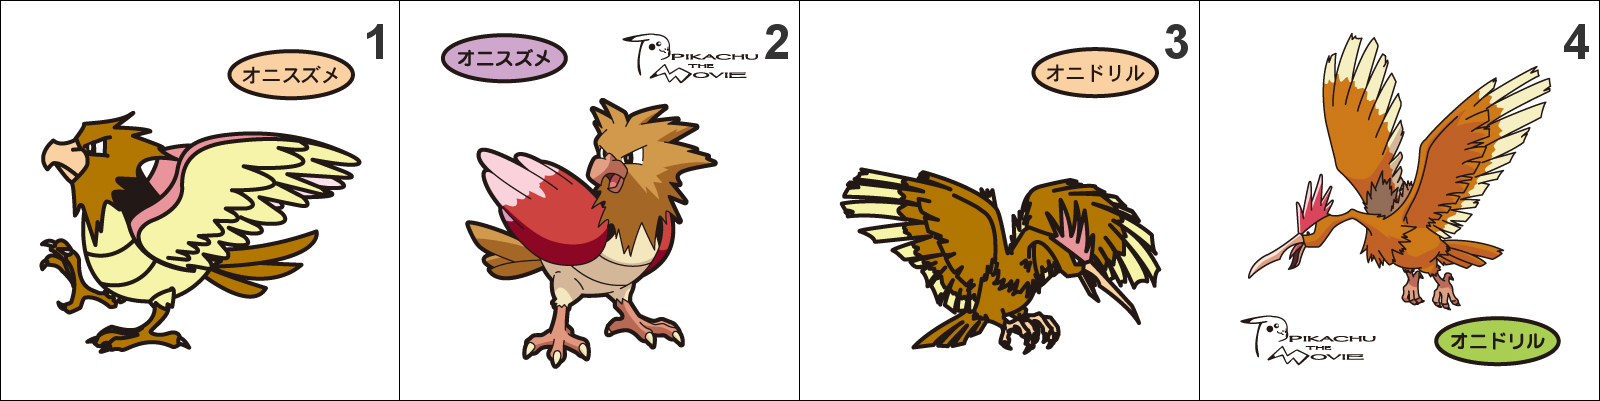 Real Pokemon Fearow Images